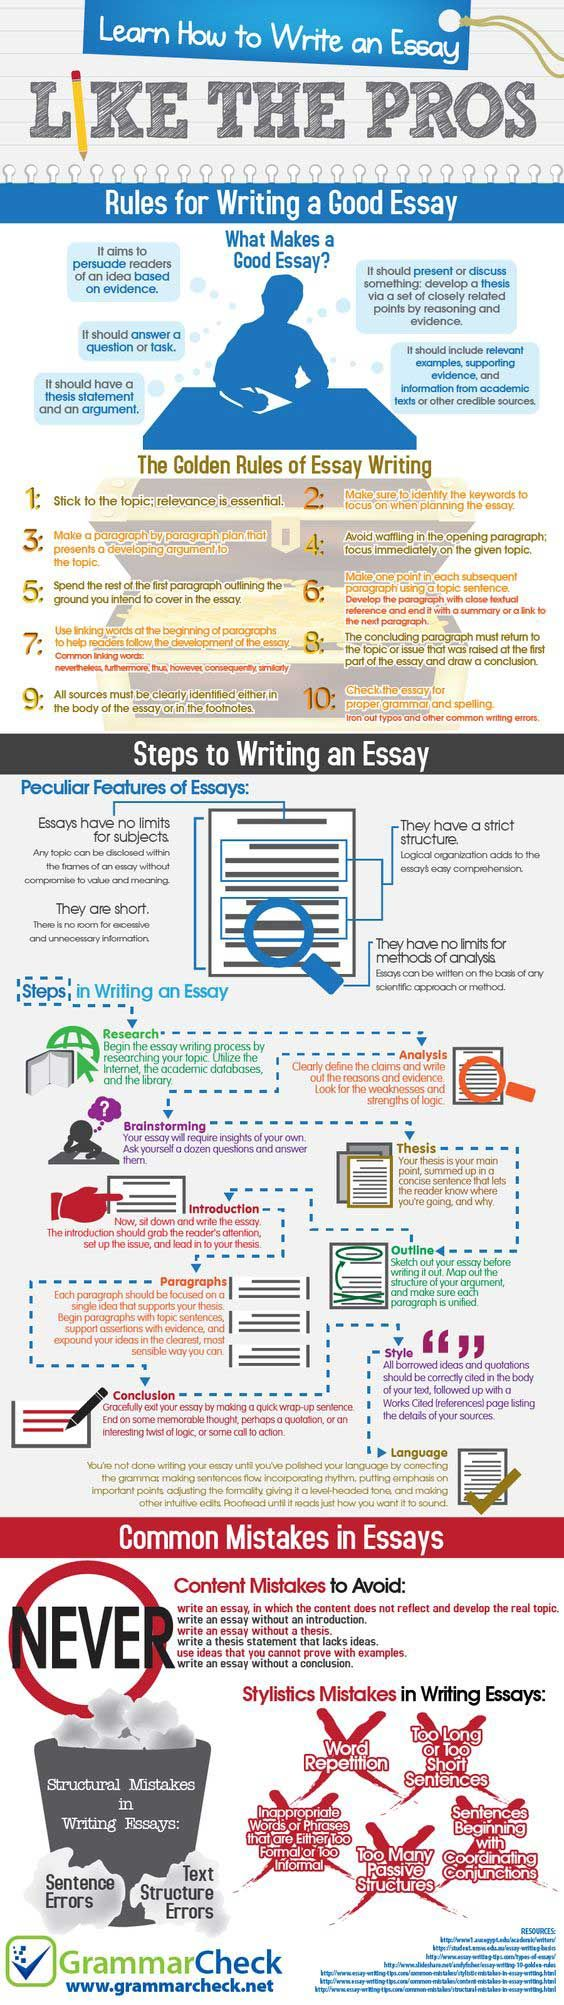 How to write a better world view essay?